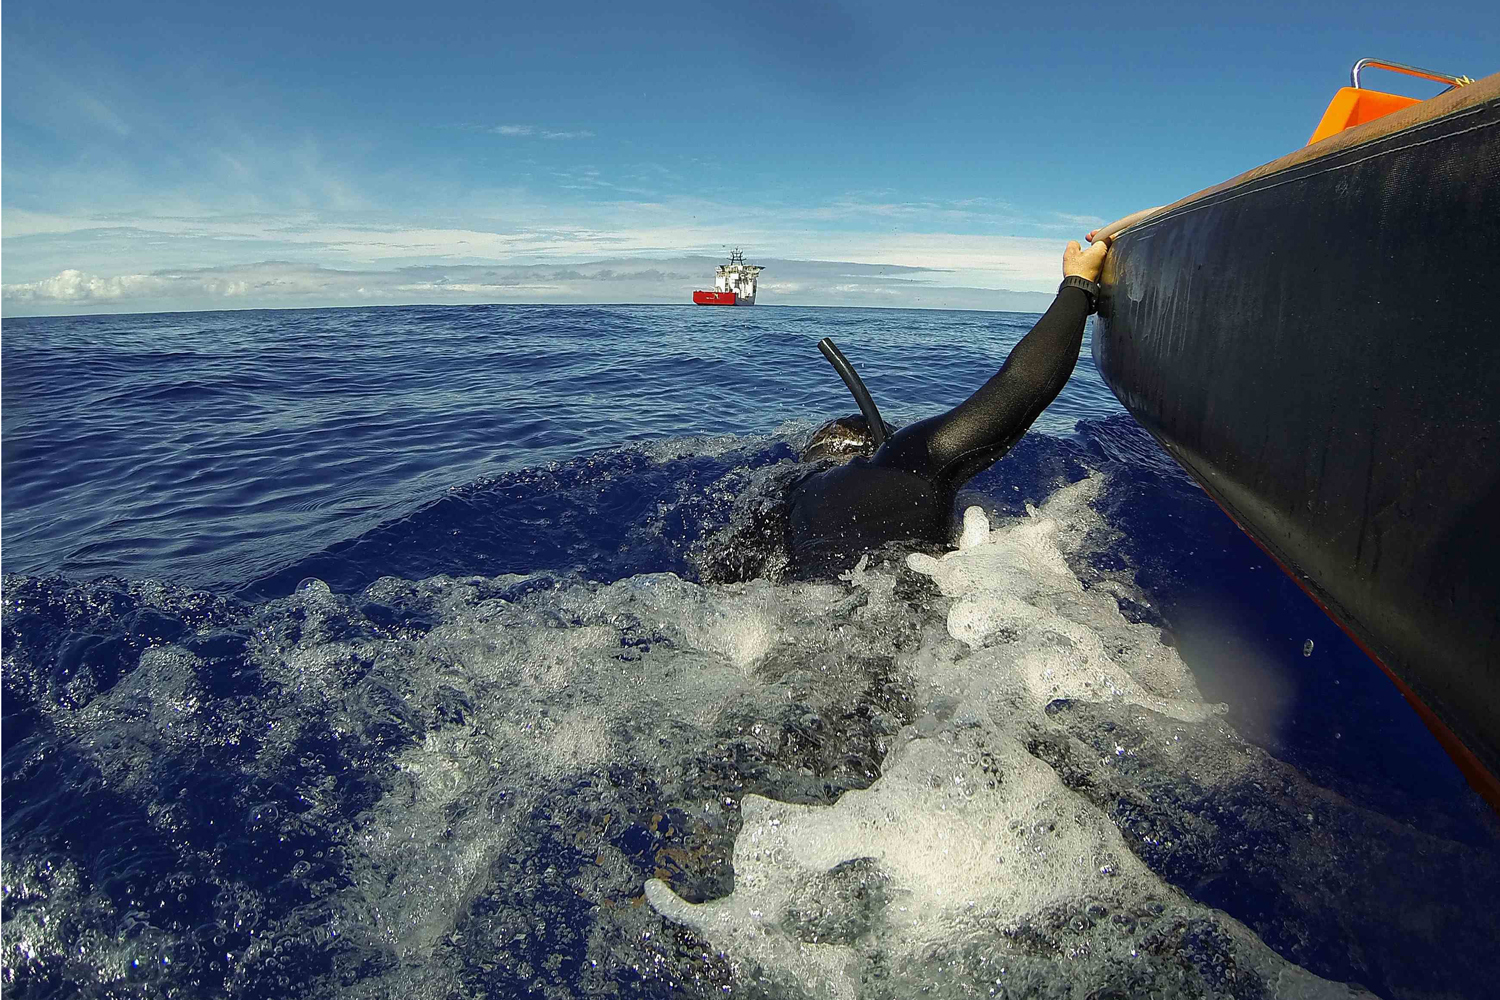 Apr. 8, 2014. A fast response craft from Australian Defense Vessel Ocean Shield tows Able Seaman Clearance Diver Michael Arnold as he searches the ocean for debris in the search zone in the southern Indian Ocean for the missing Malaysian Airlines flight MH370.